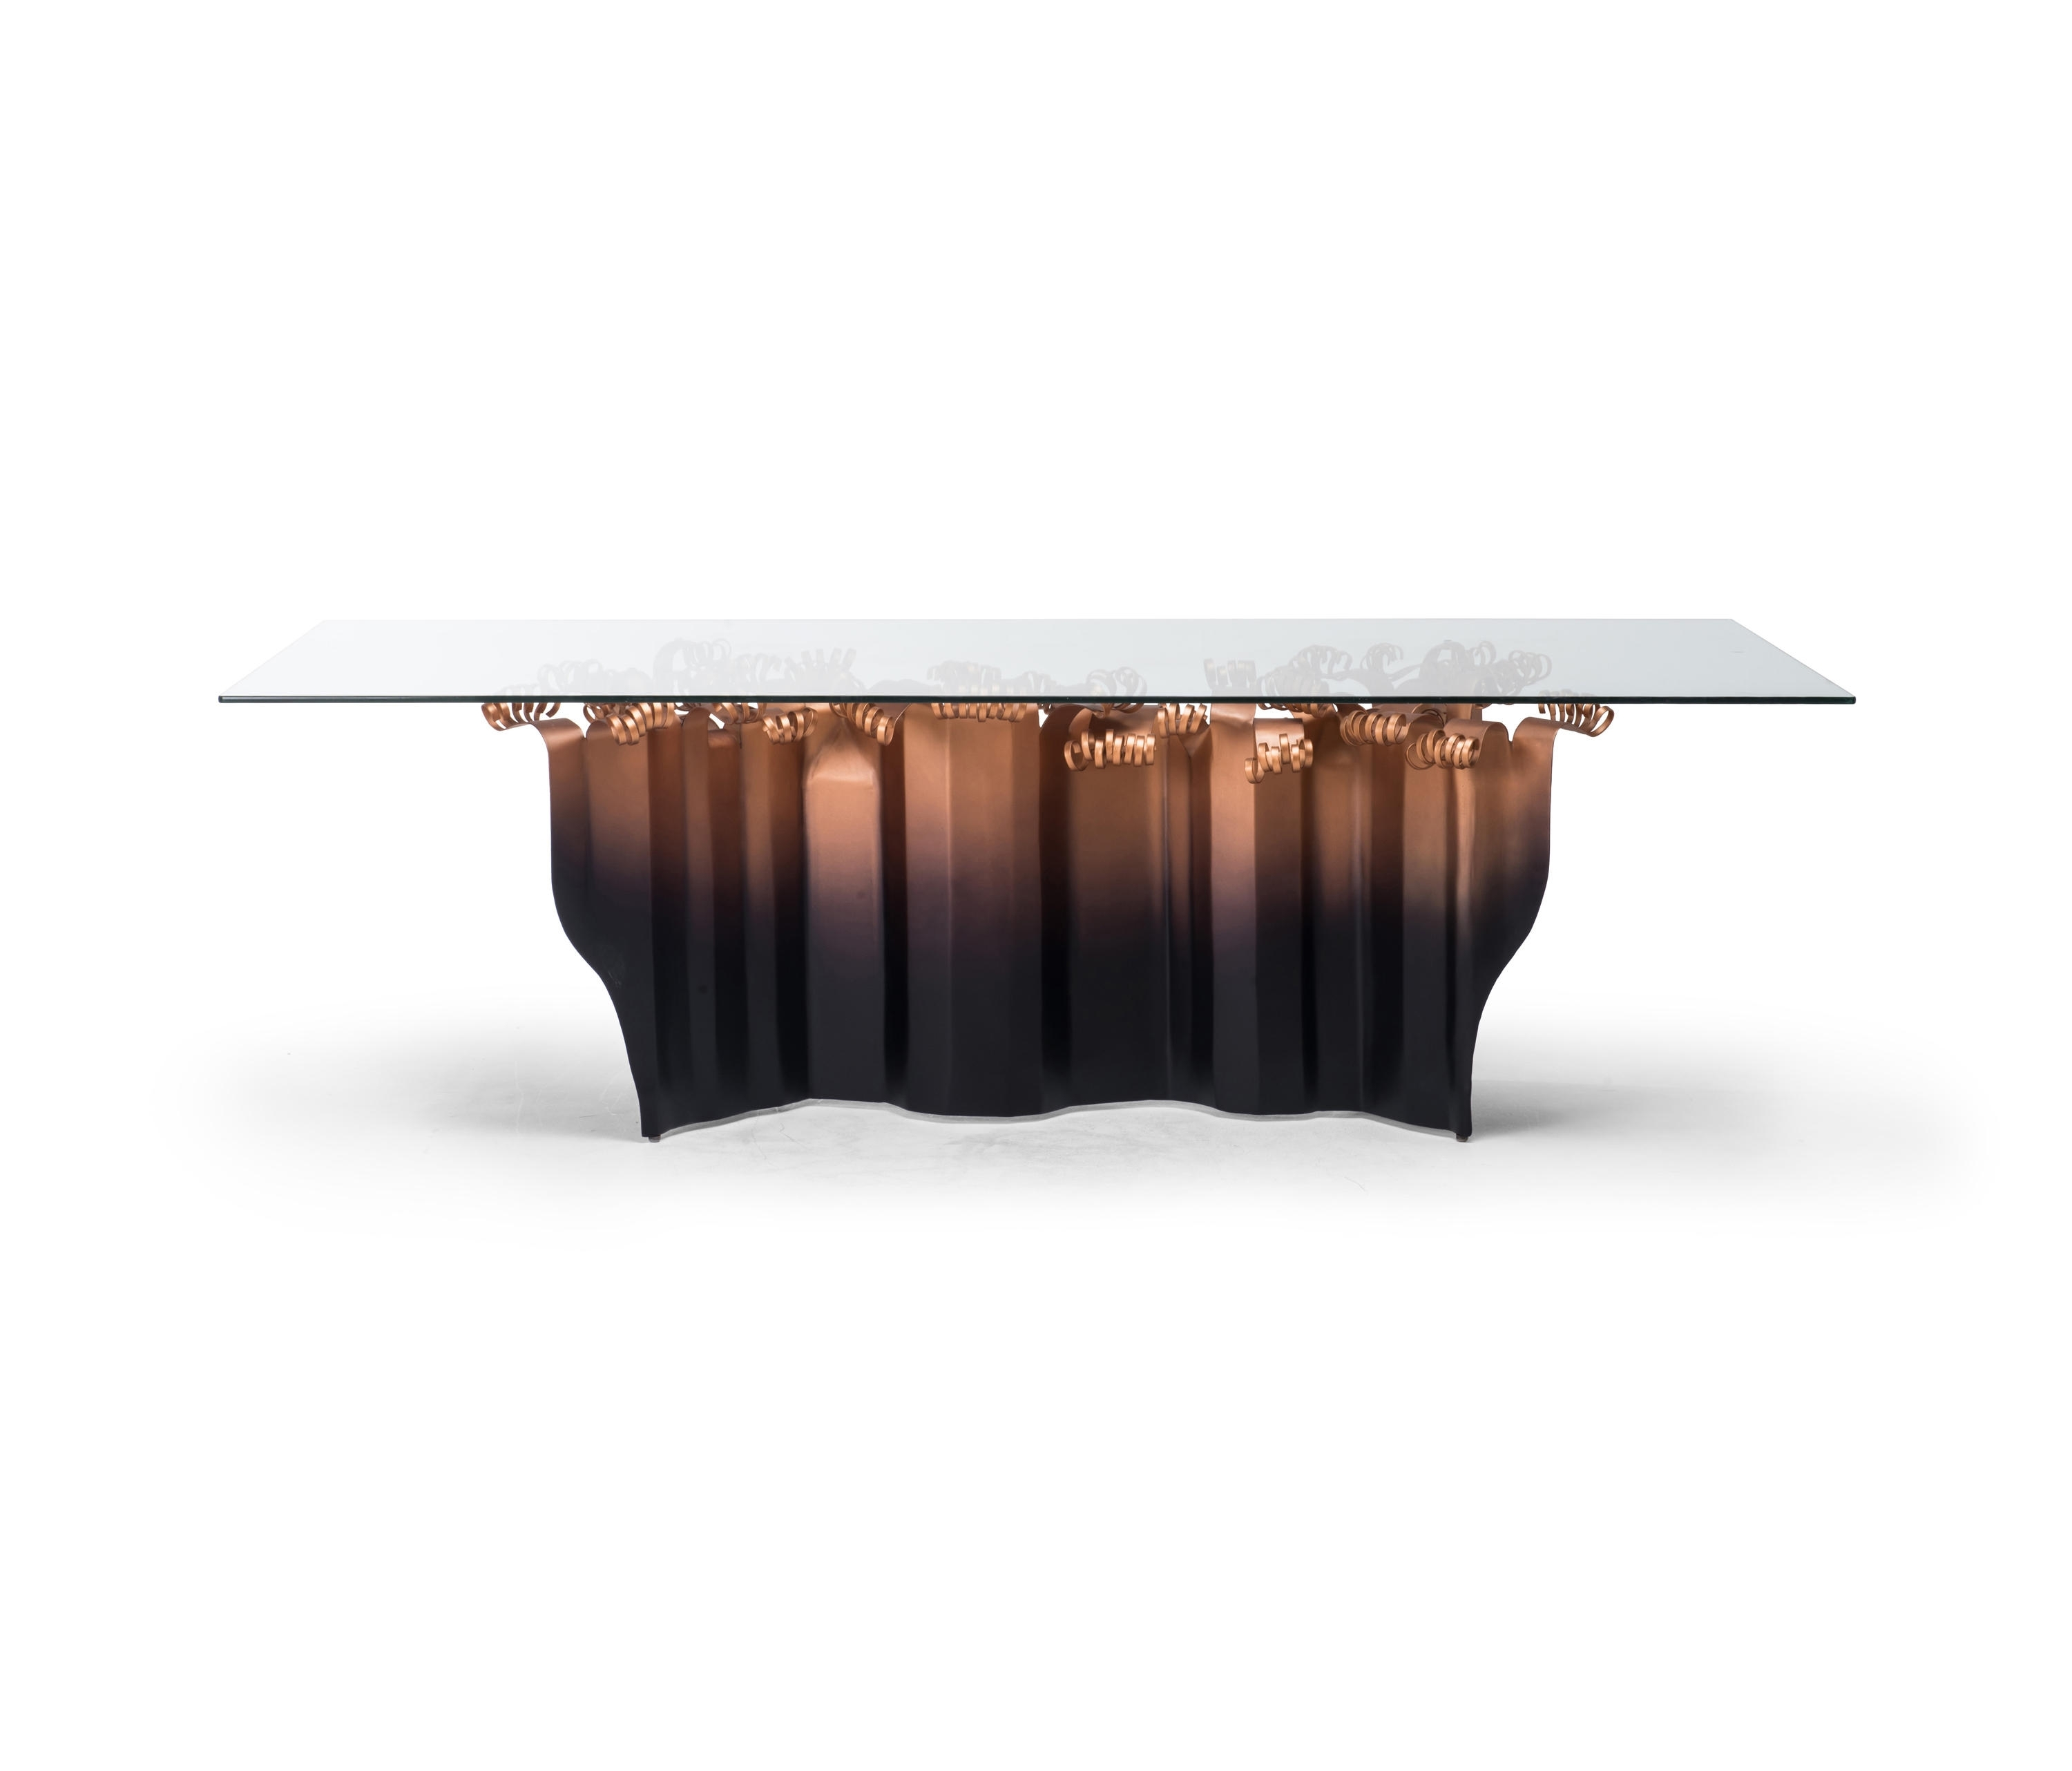 Vivo Dining Table – Dining Tables From Kenneth Cobonpue | Architonic Regarding 2017 Artisanal Dining Tables (Image 19 of 20)